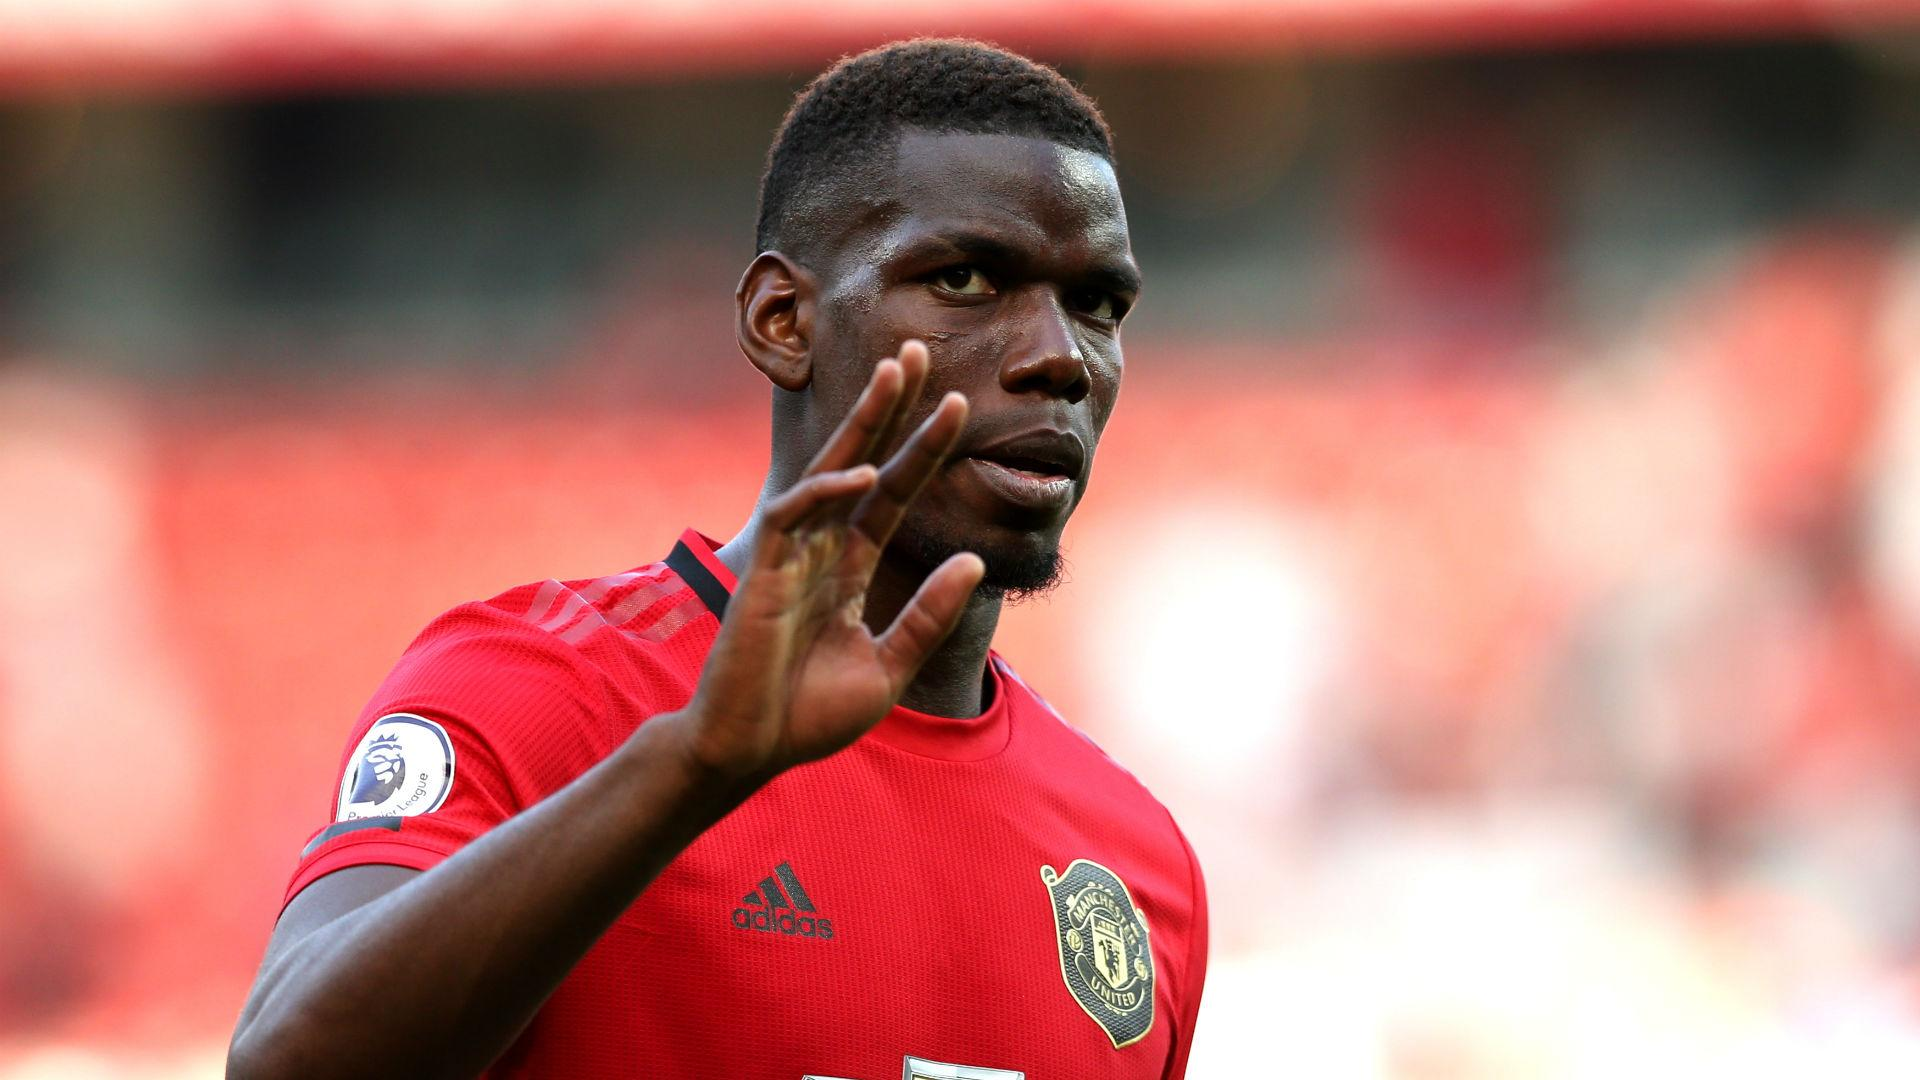 Pogba 'ready for Arsenal' as Man Utd reintroduce World Cup winner after injury